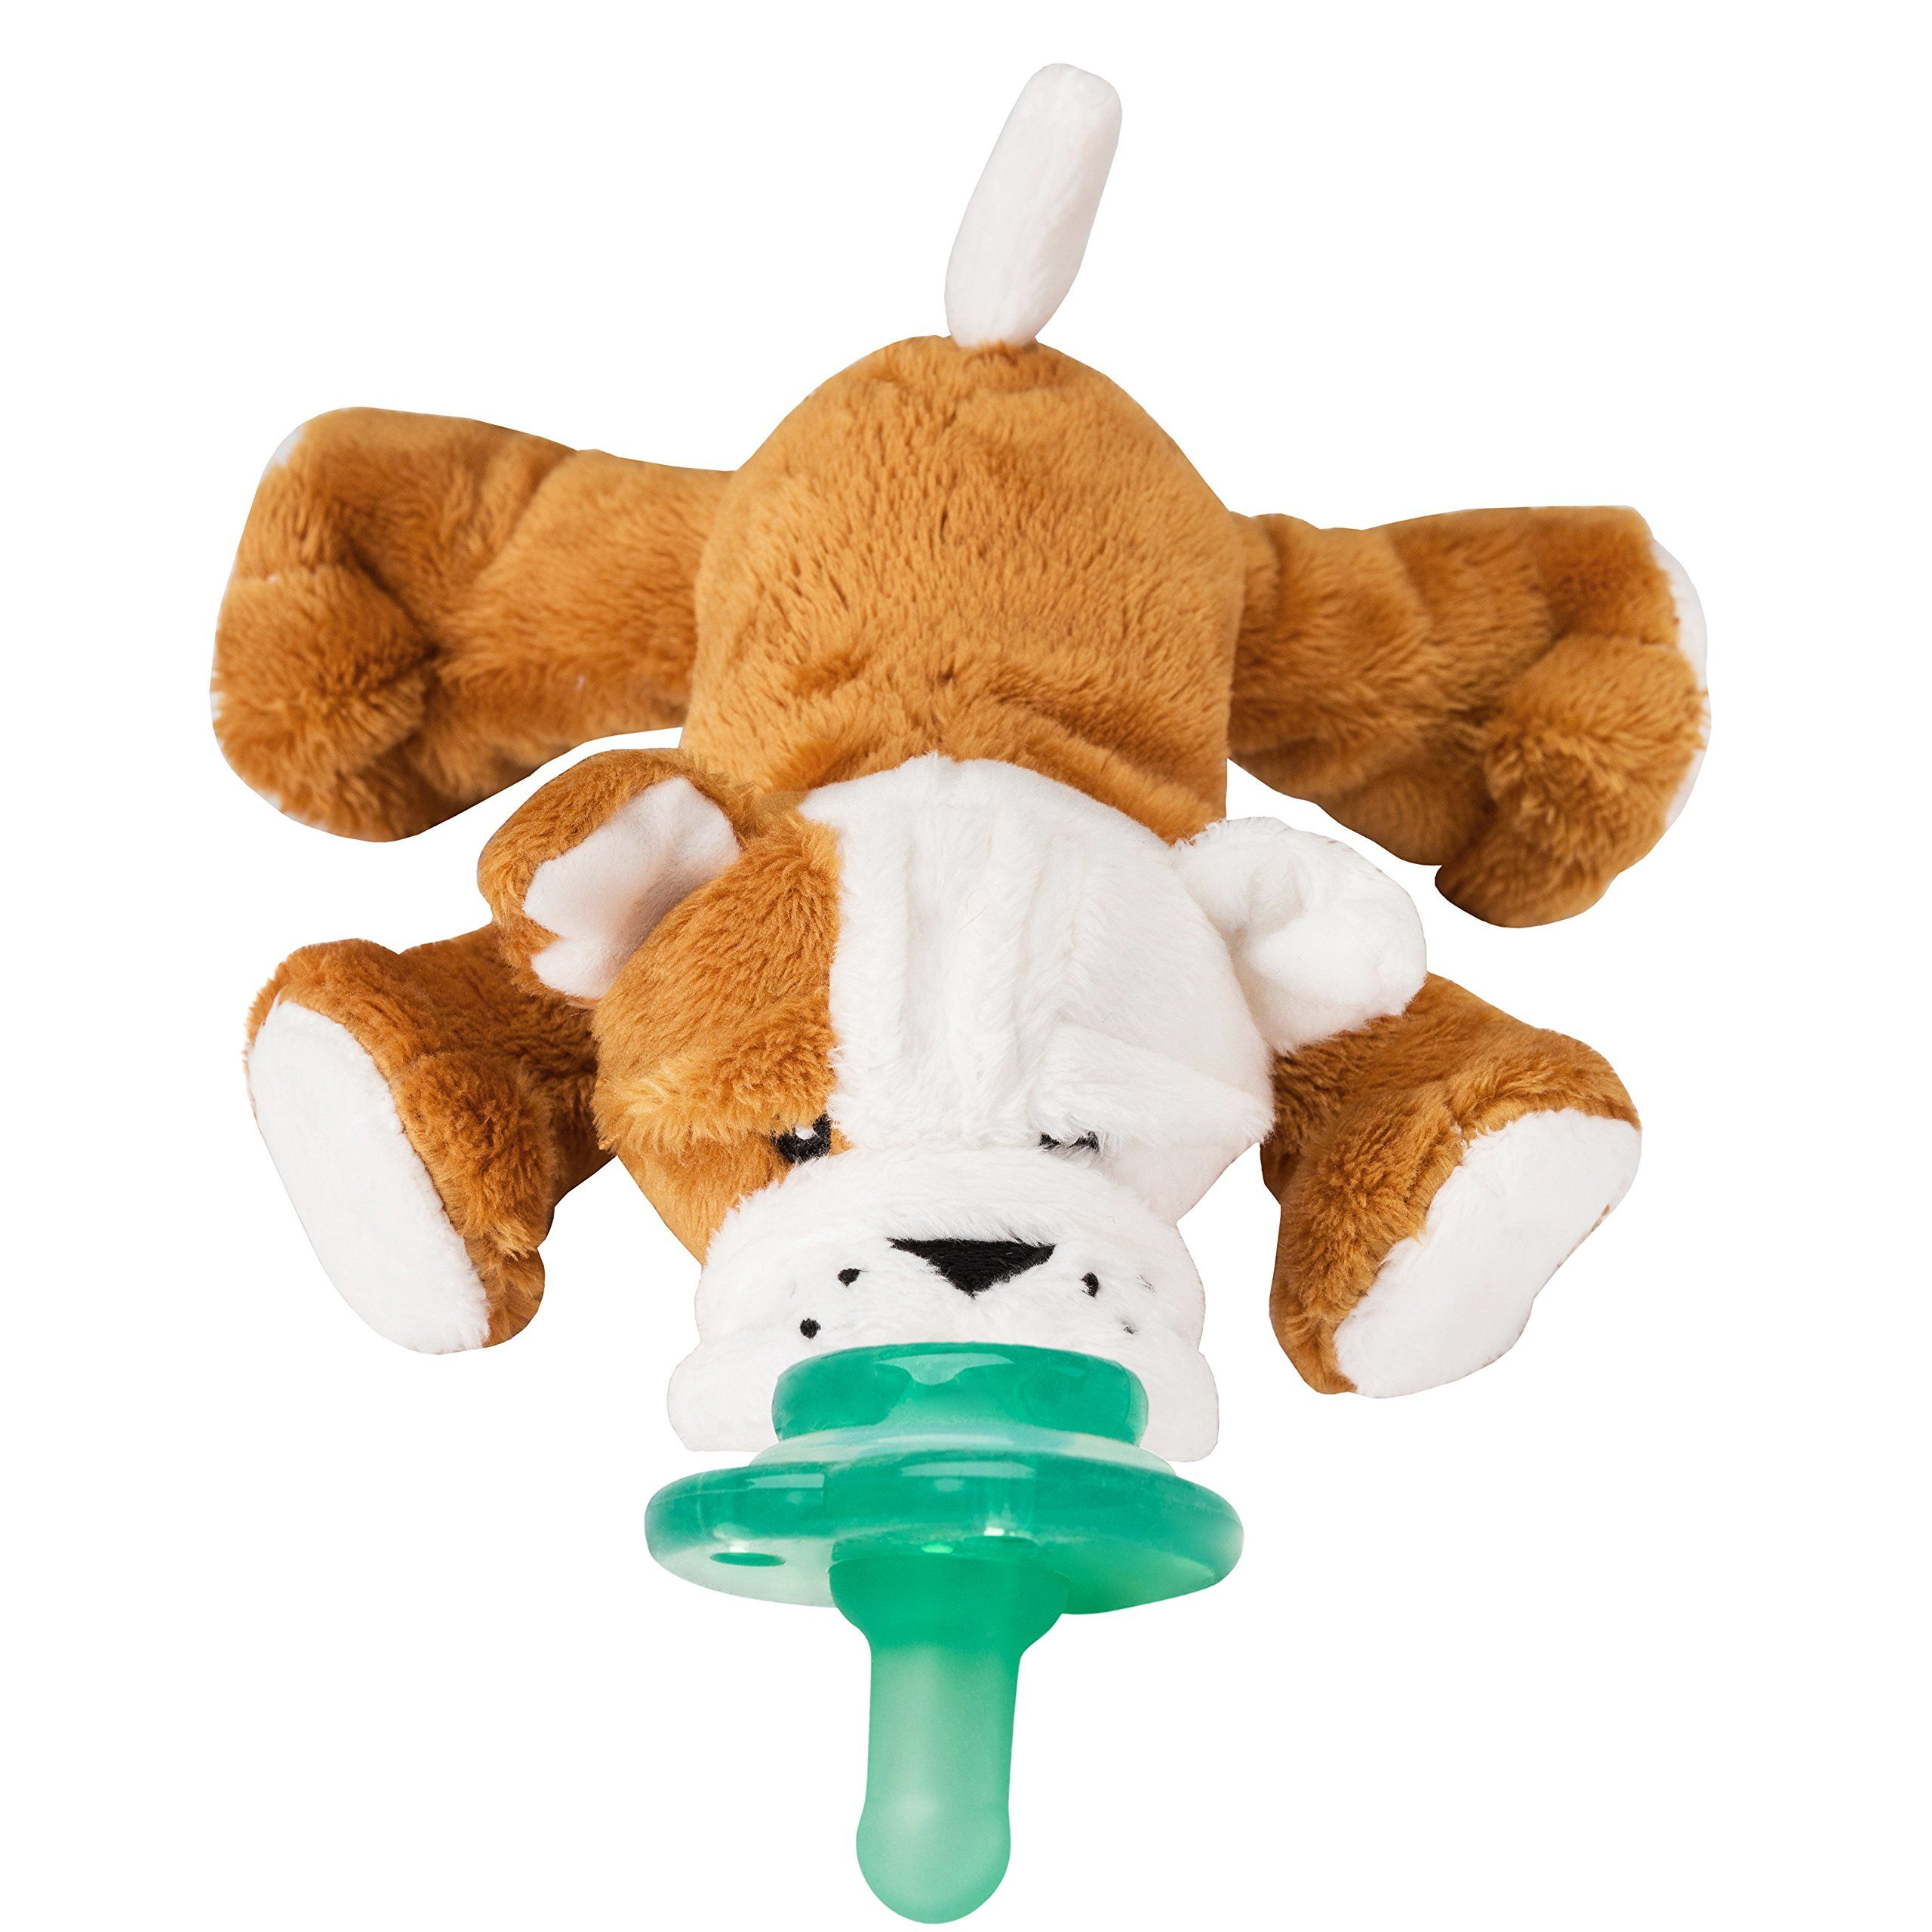 Nookums Paciplushies Bull Dog Shakies Pacifier Holder And Rattle 2